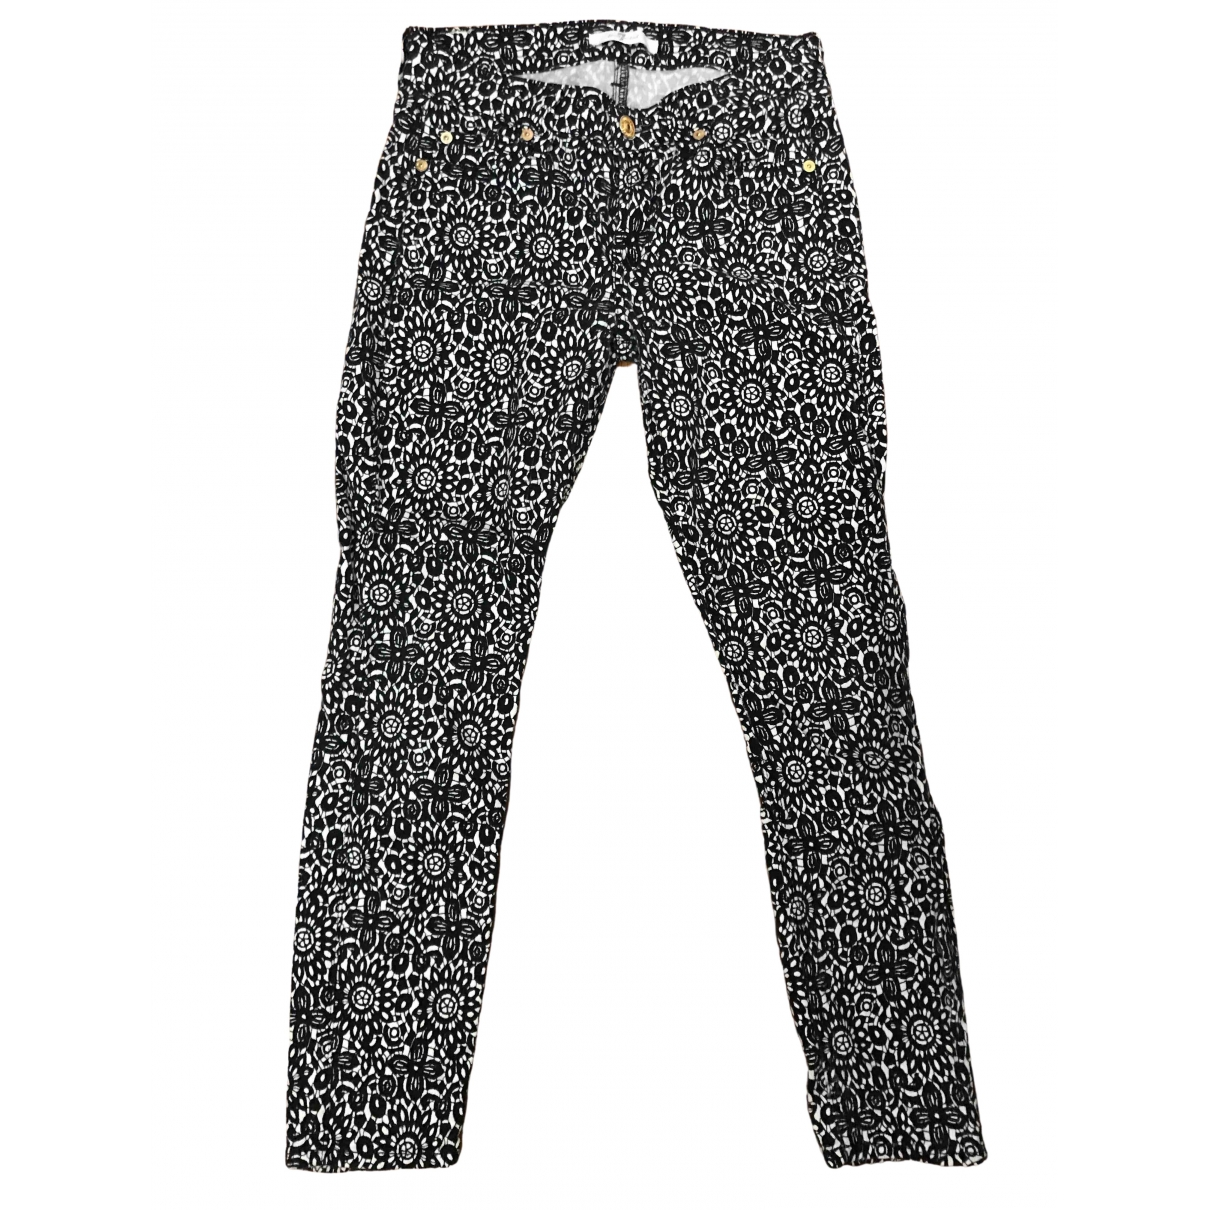 7 For All Mankind \N Black Cotton Trousers for Kids 18 months - up to 81cm FR